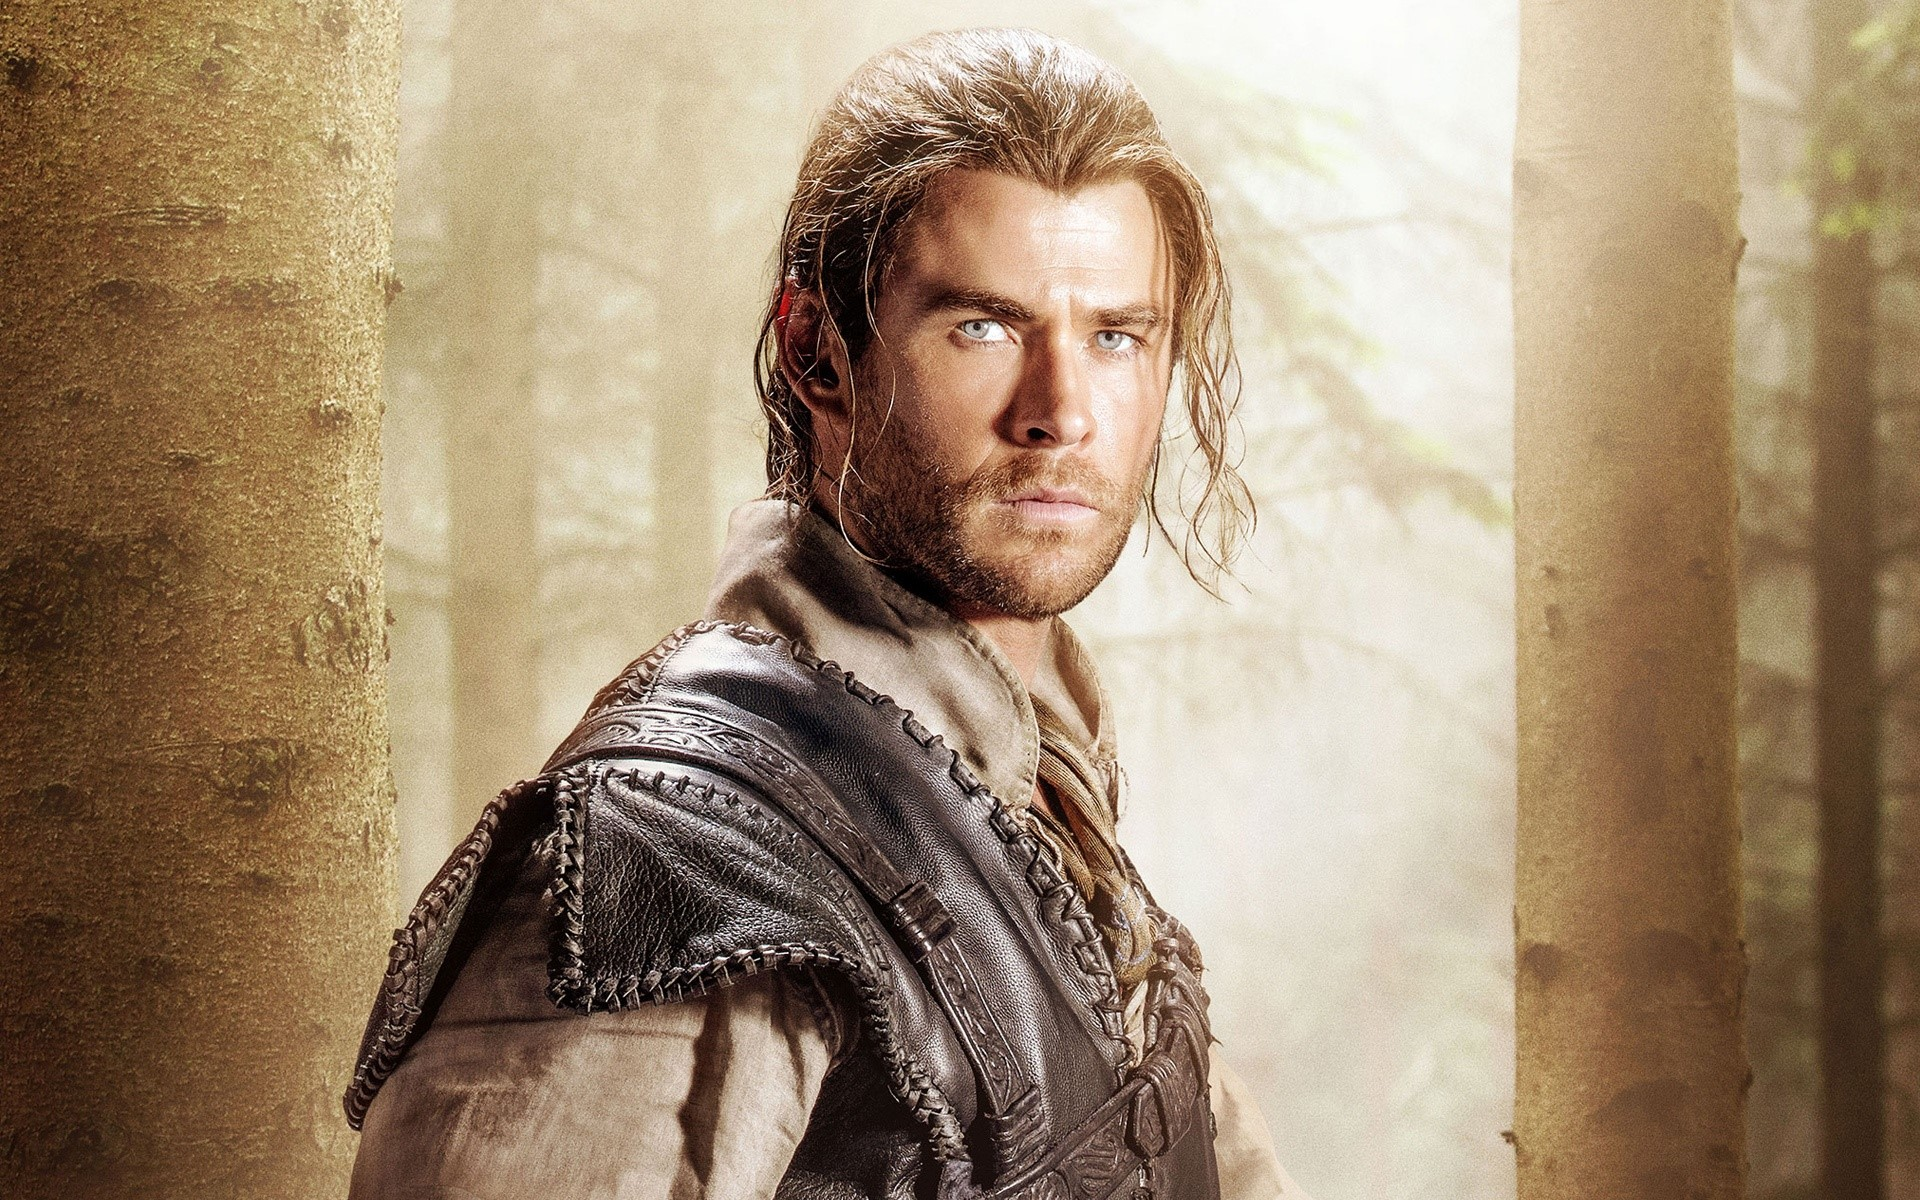 Wallpaper Chris Hemsworth in The Hunter and the Ice Queen